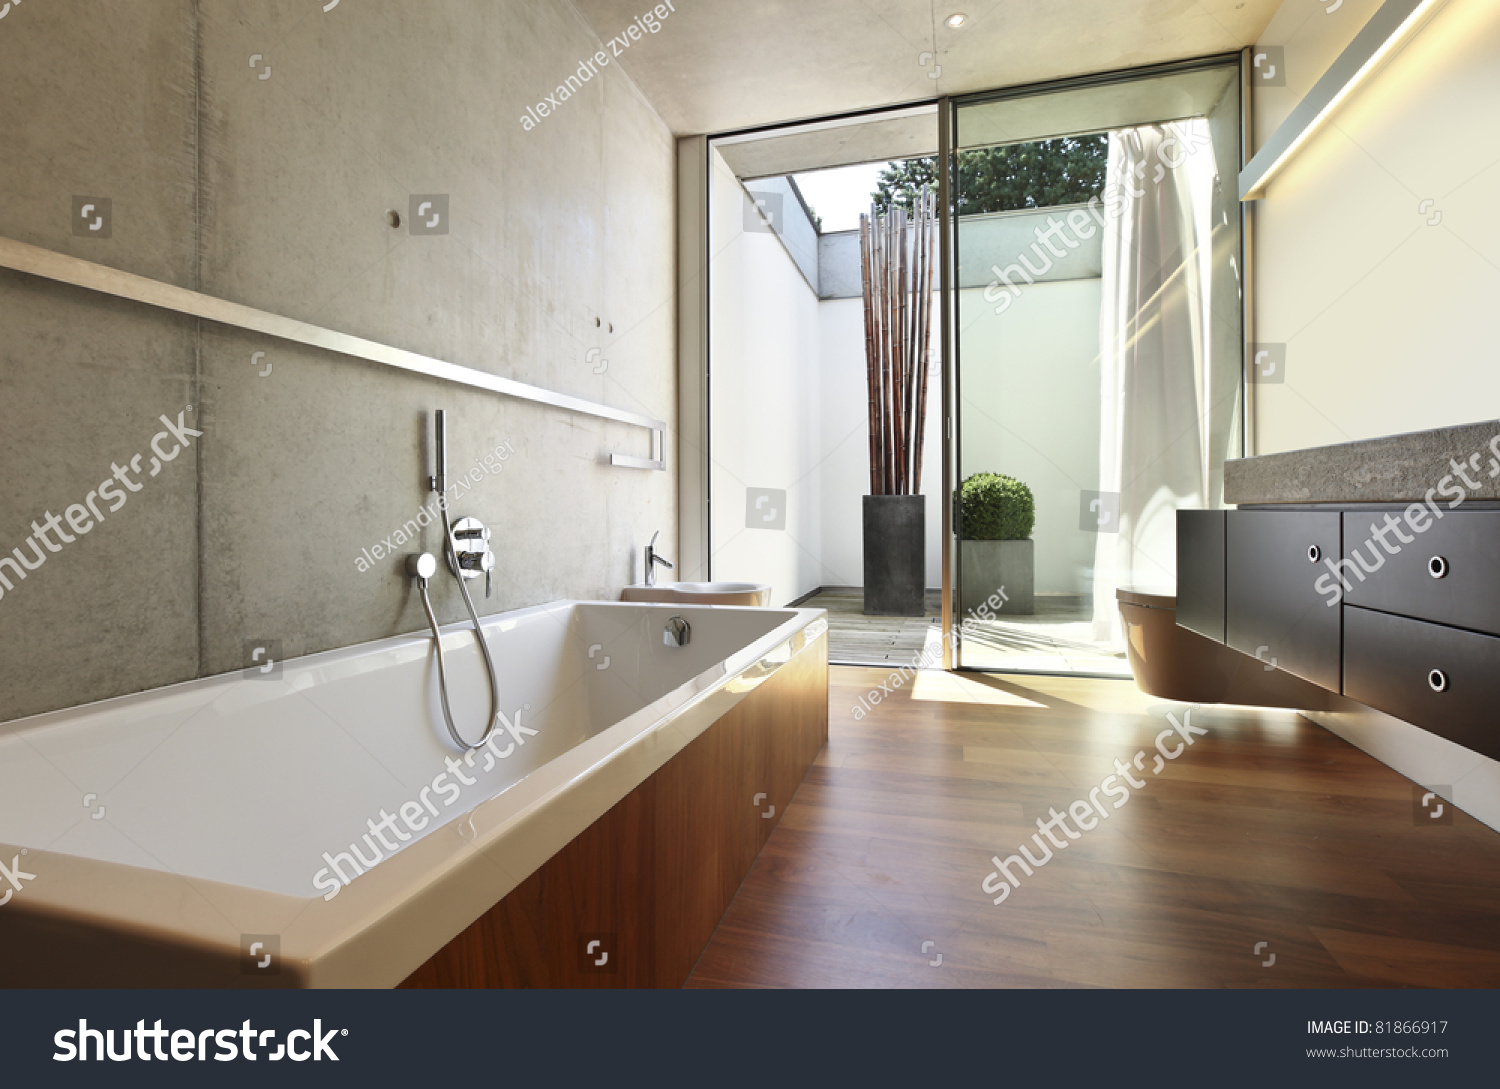 Modern house interior bathroom modern house for Modern interior bathroom